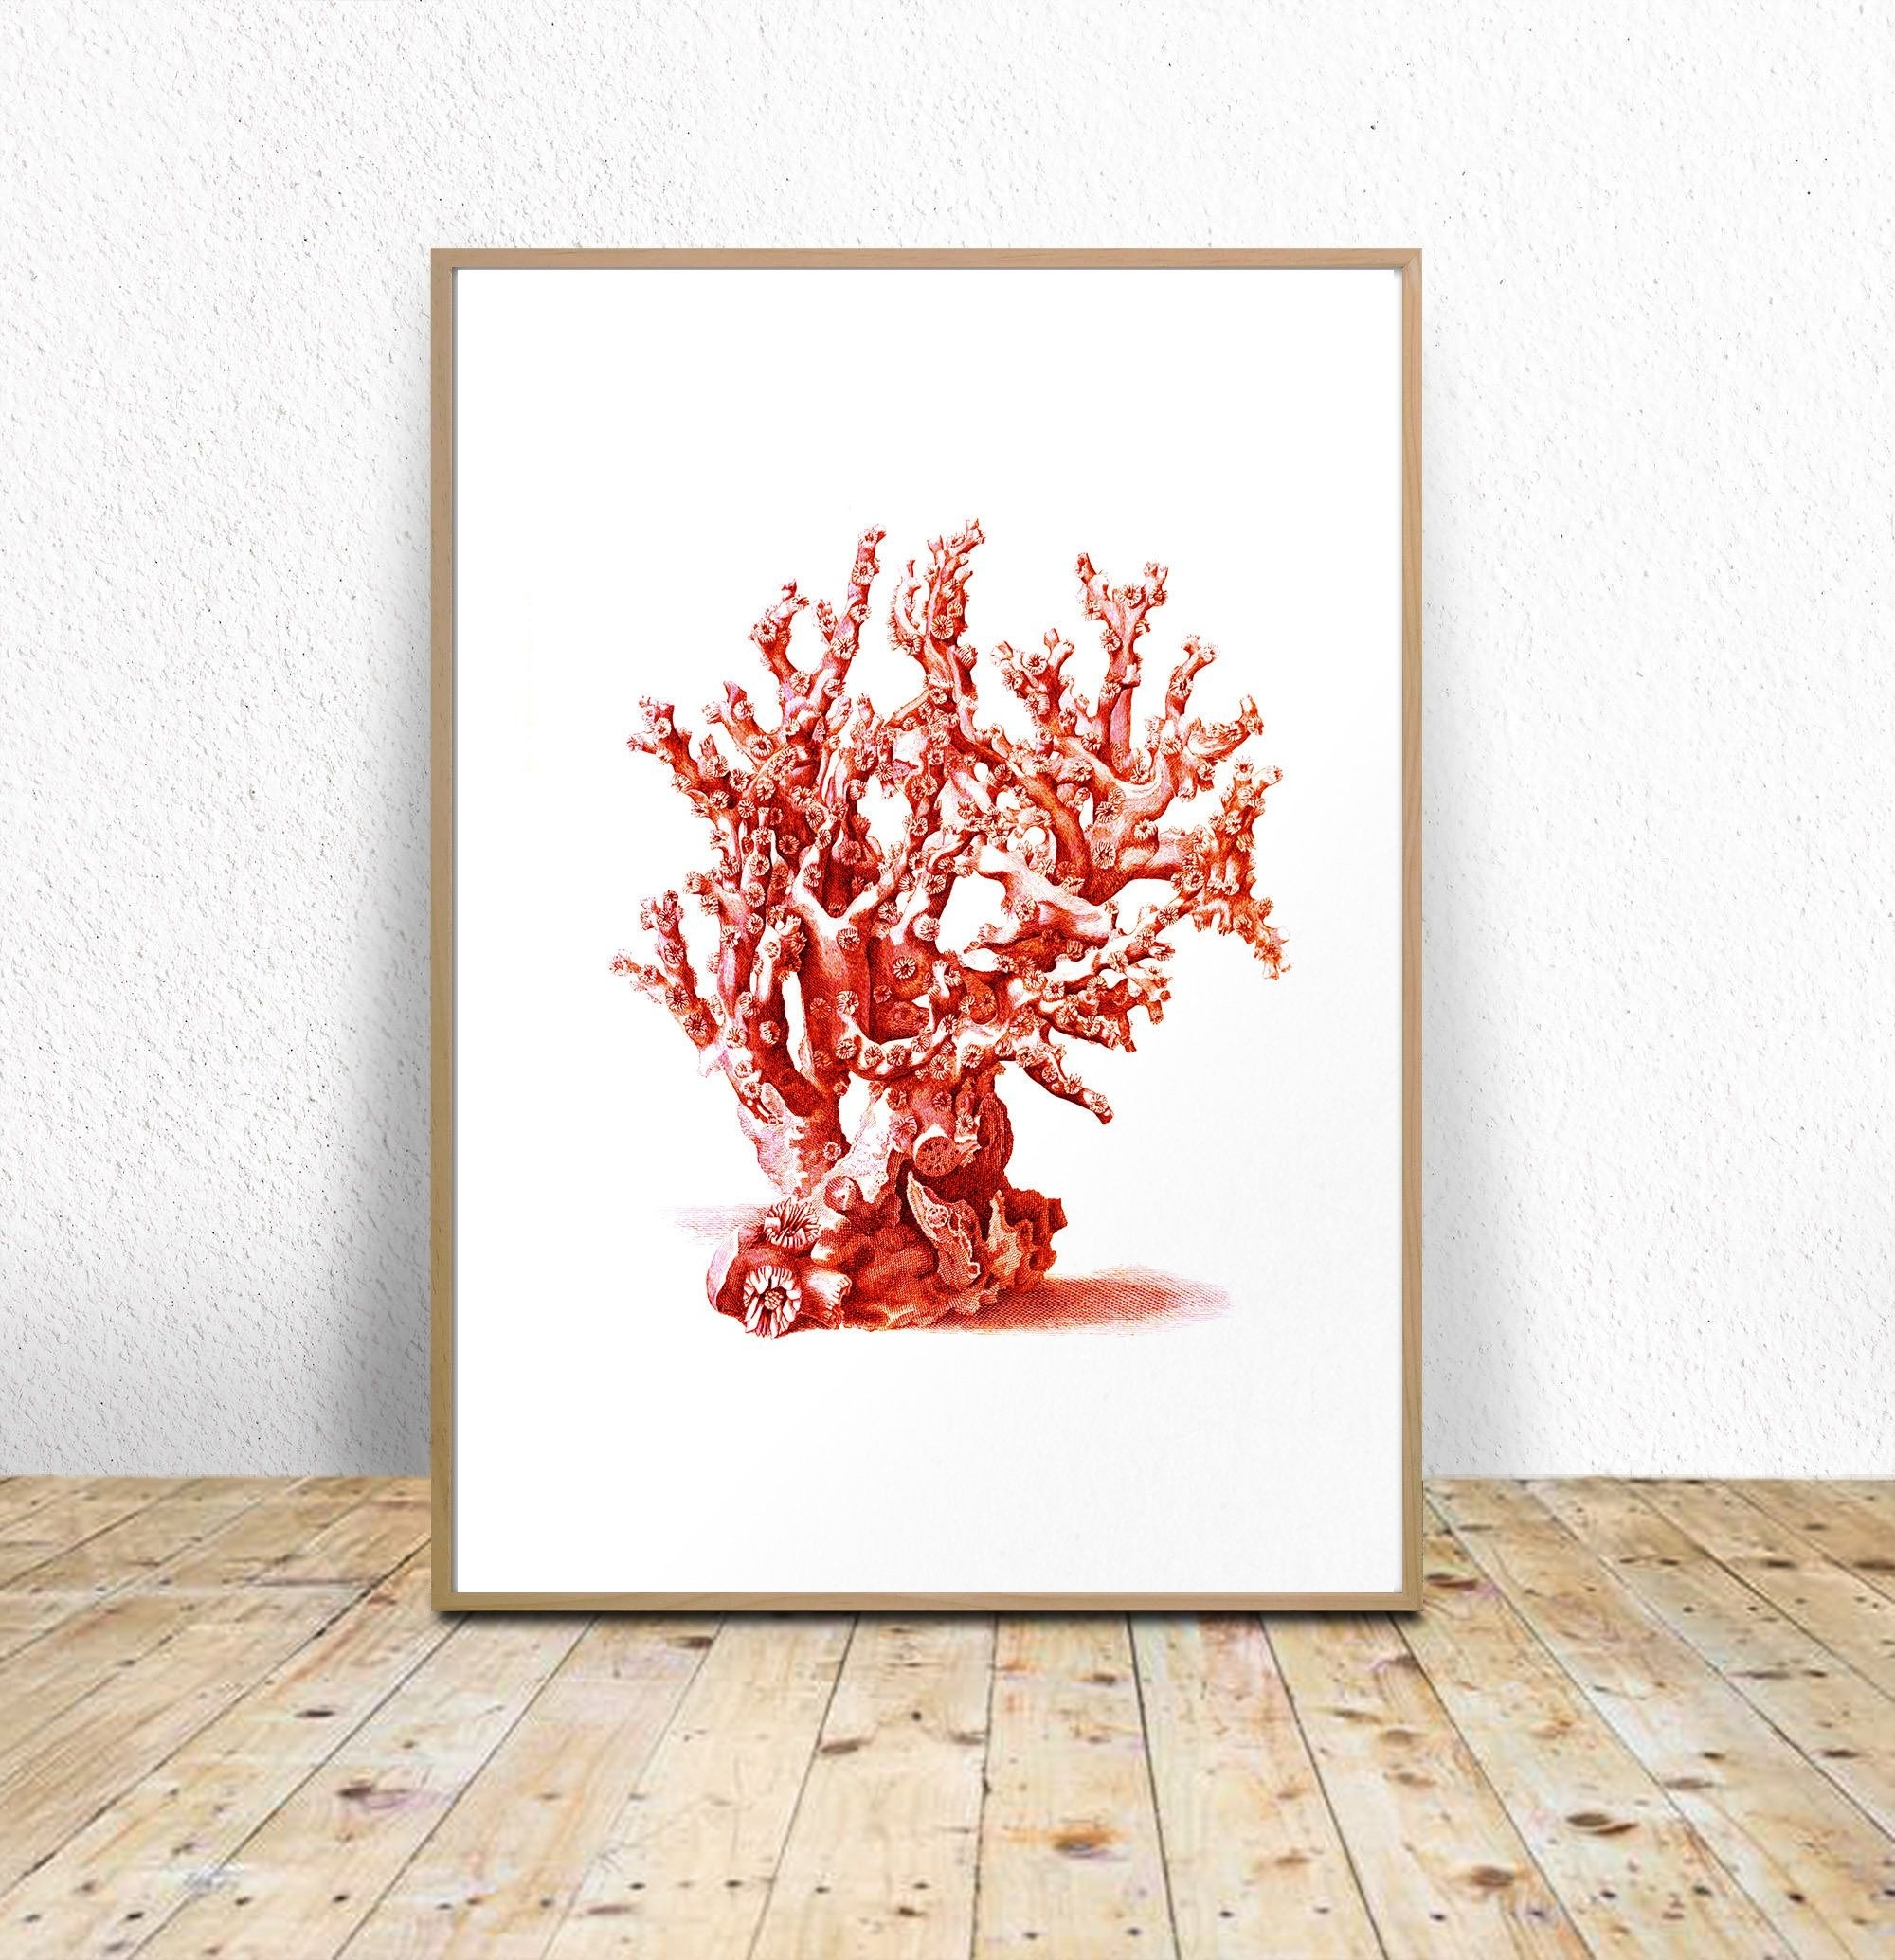 Coral Wall Art Intended For Well Known Sea Coral Printable, Red Sea Coral, Coral Wall Art, Digital Download (View 7 of 15)